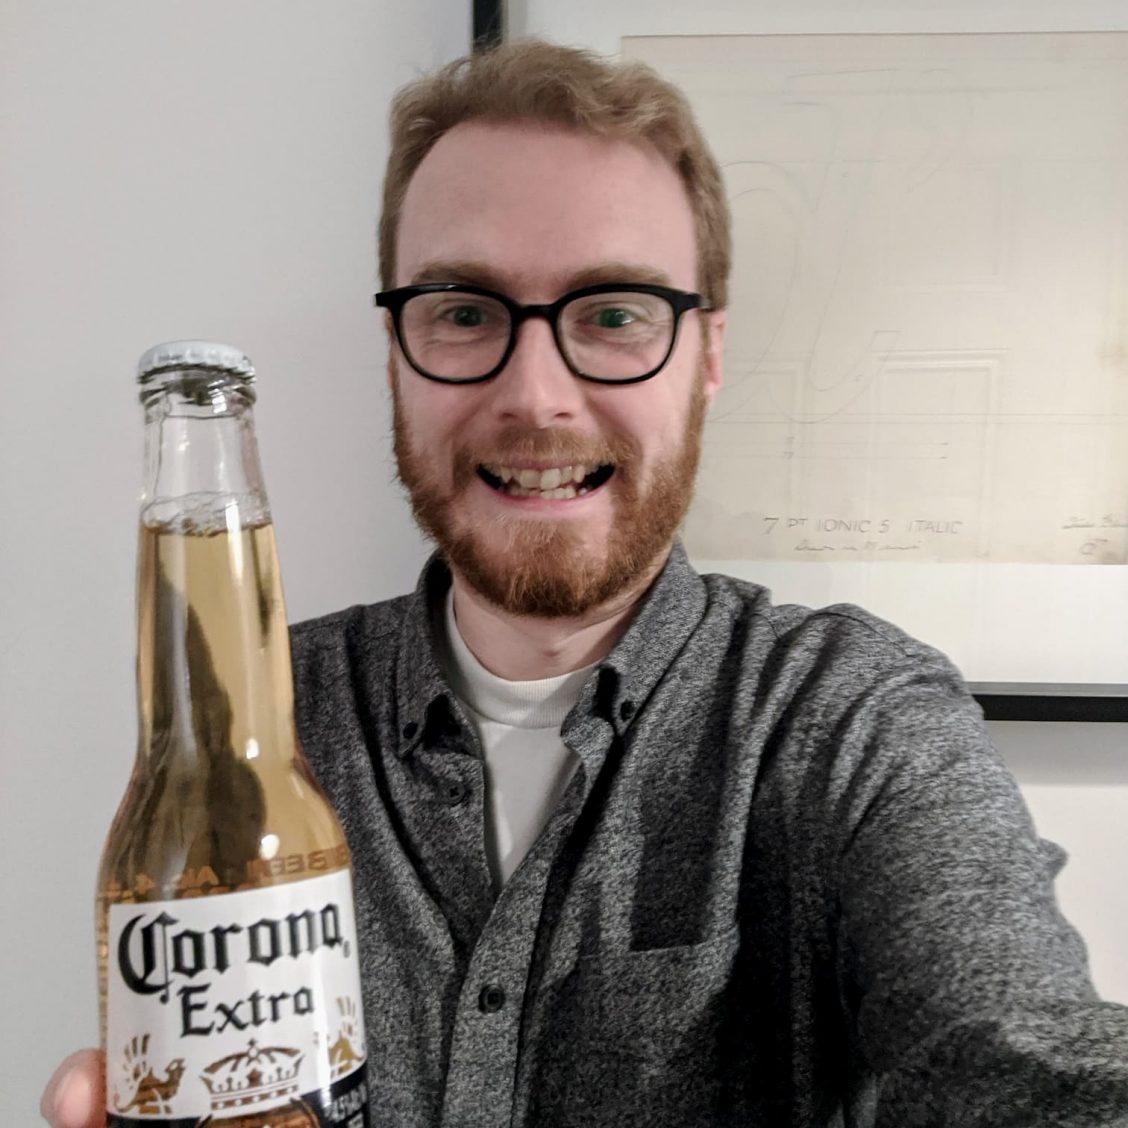 Me holding a bottle of Corona